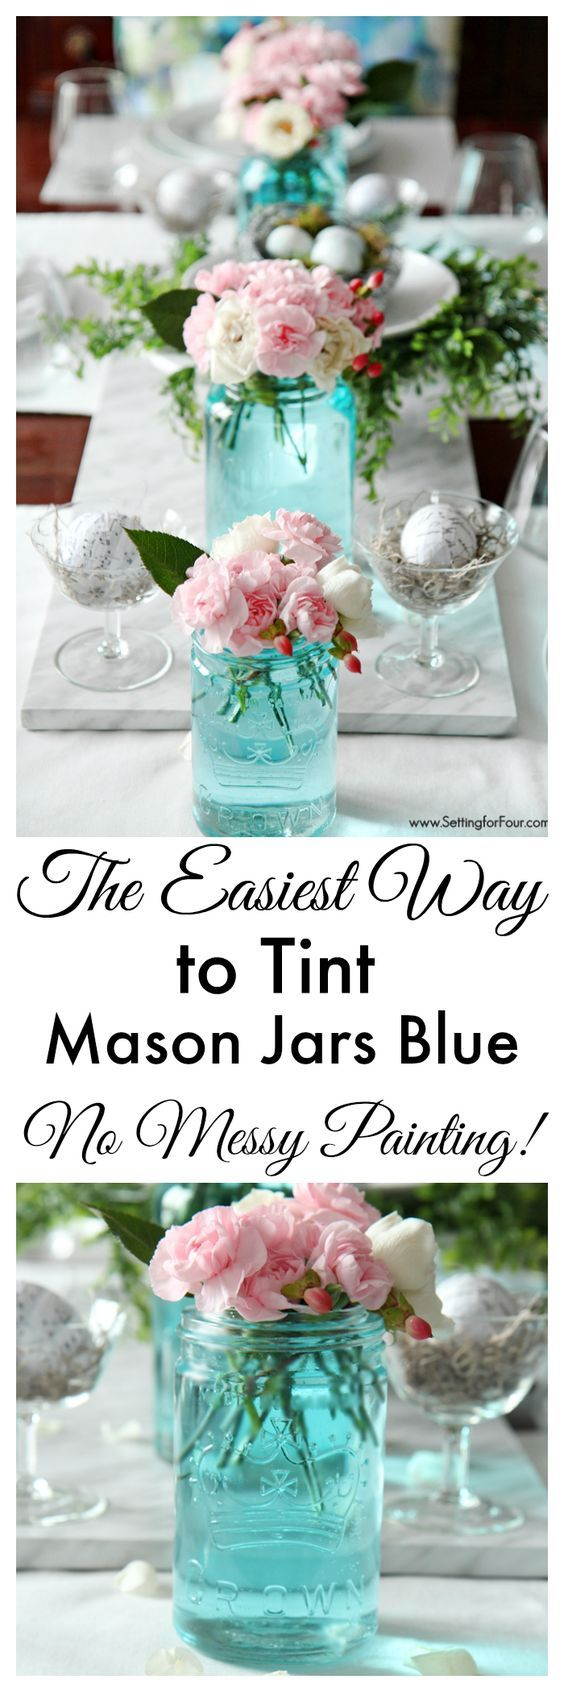 This is completely GENIUS! Great DIY decor idea for weddings, bridal showers, graduations, birthdays and more! This is the quickest, easiest way (ever!) to tint mason jars blue! You won't believe how SIMPLE and INSTANT it is to get that perfect vintage blue mason jar color without any messy painting! And you can customize the color for your decor! www.settingforfour.com